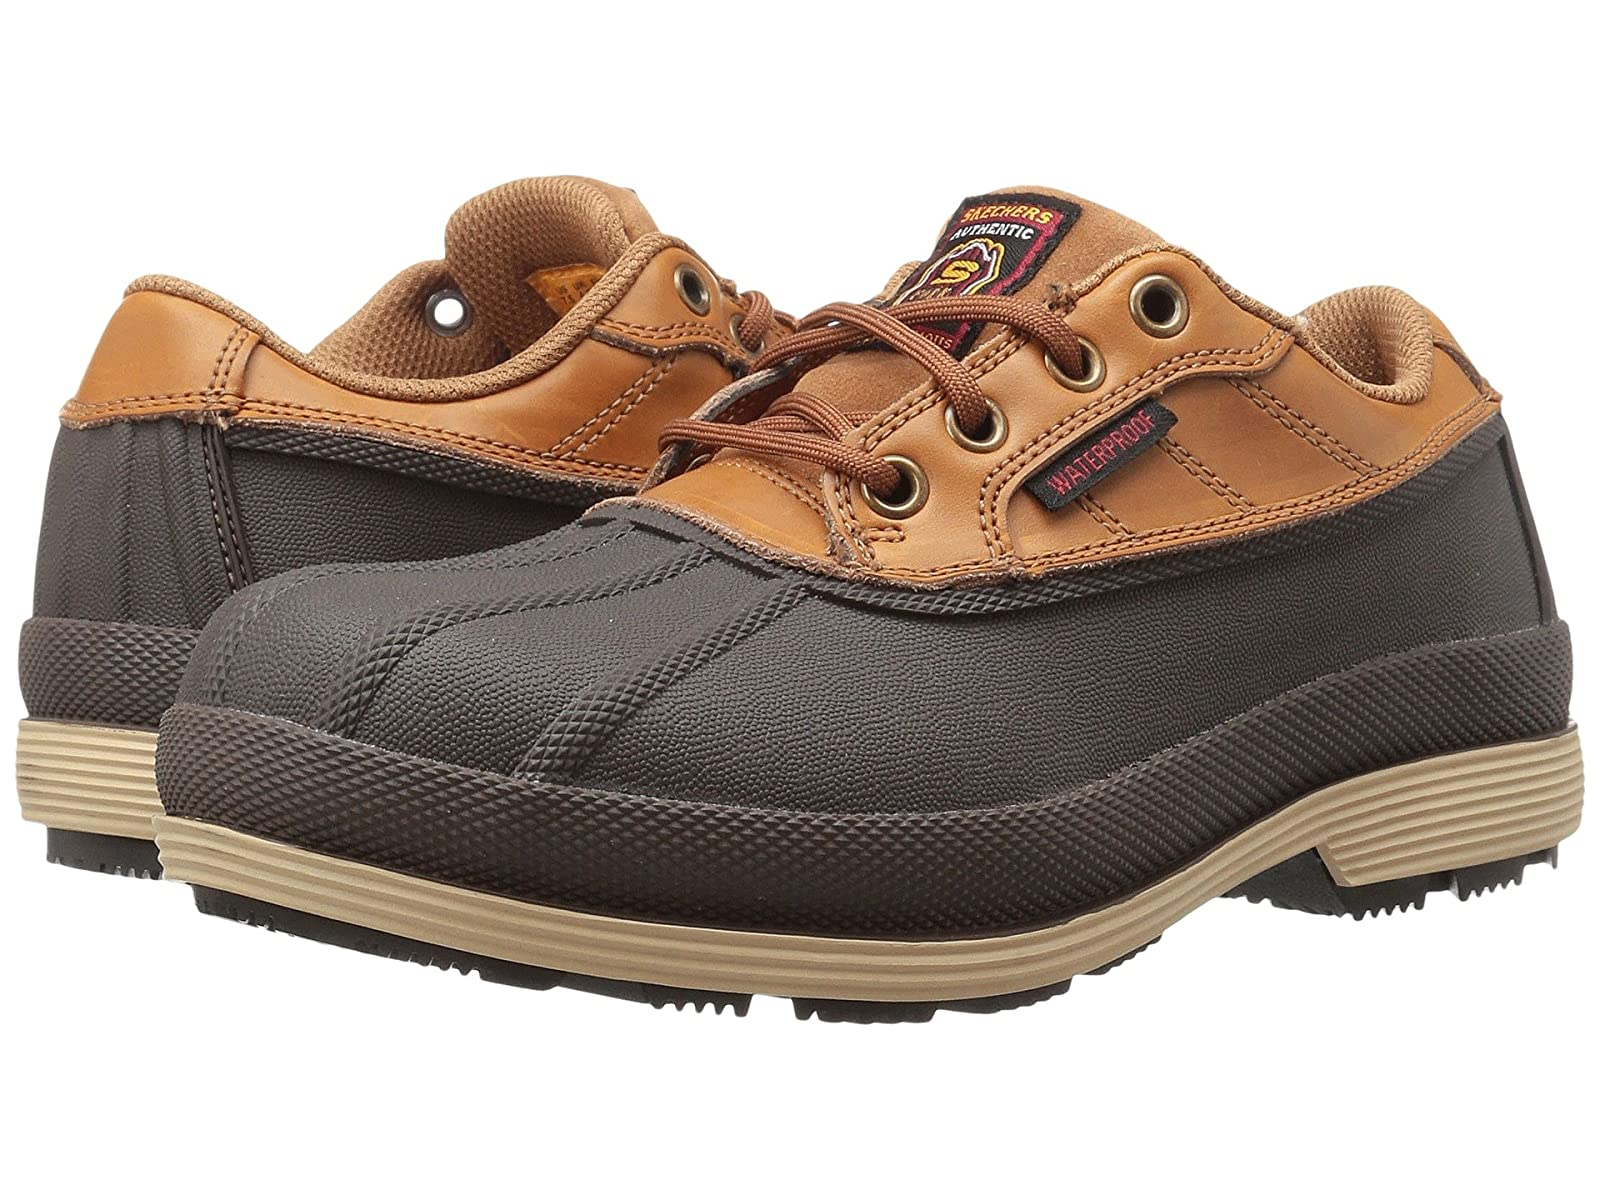 SKECHERS Work Robards - PerhamCheap and distinctive eye-catching shoes